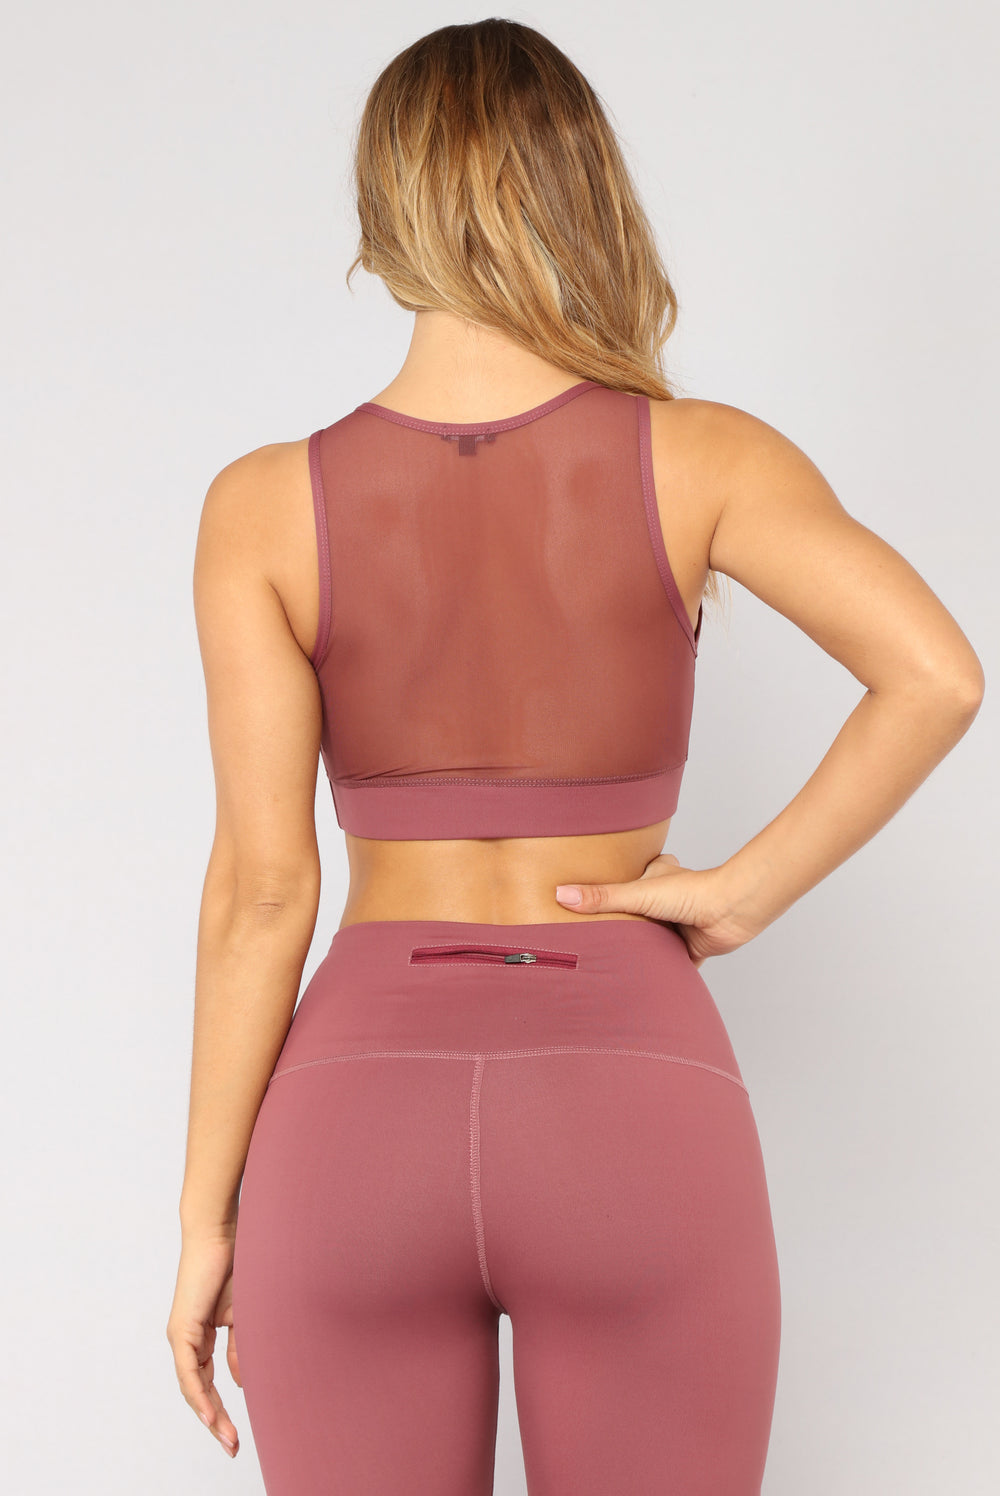 Track Record Performance Sports Bra - Mauve